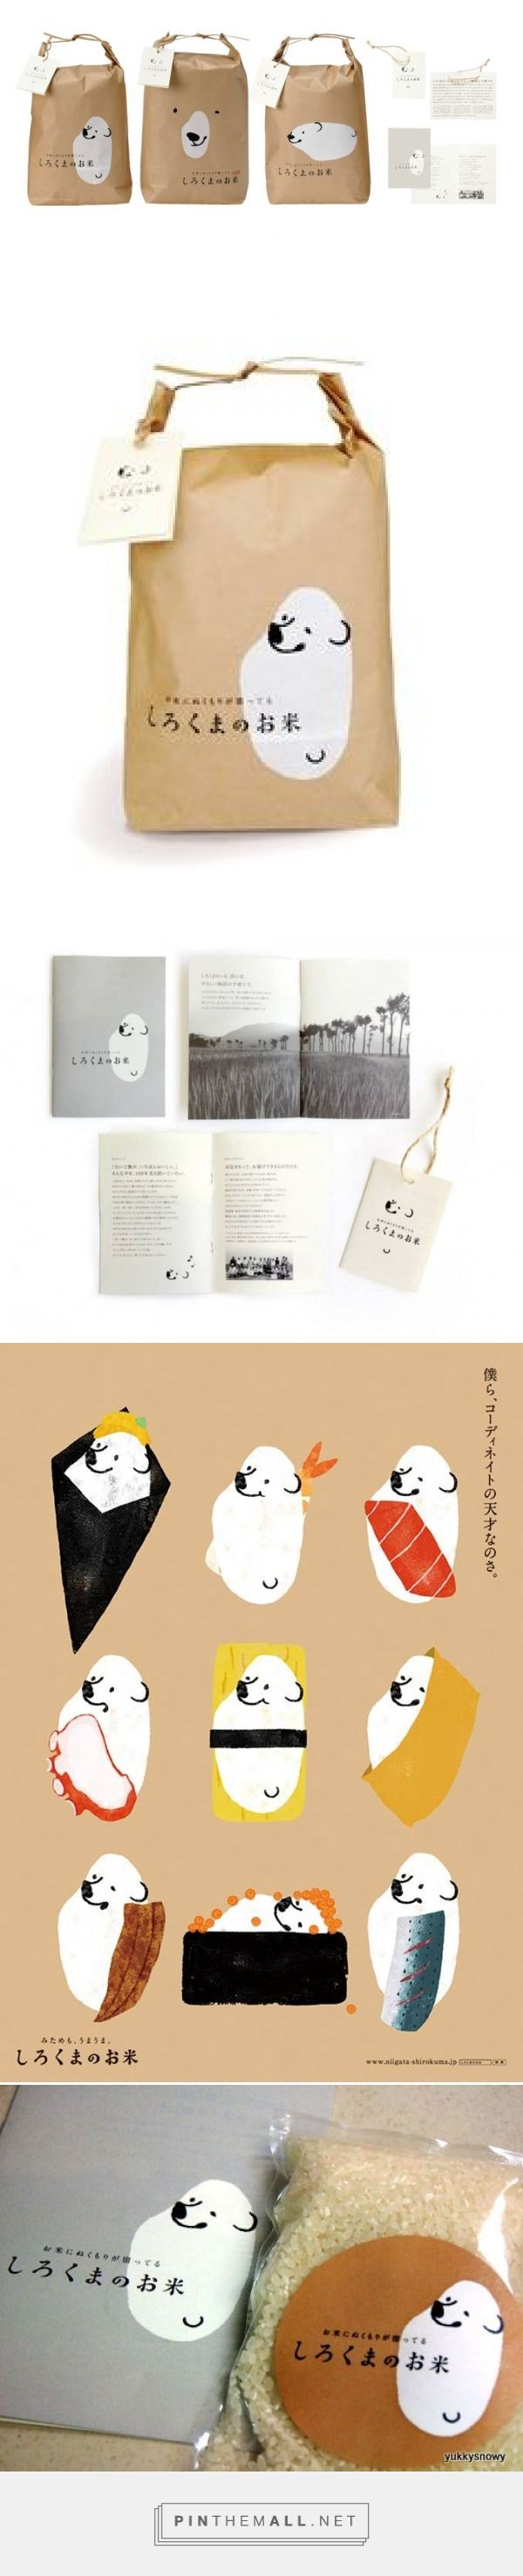 More behind the very popular Shirokuma Rice packaging by Ishikawa Ryuta curated by Packaging Diva. Had to go to several different sources to pull this all together. Cute is always popular.